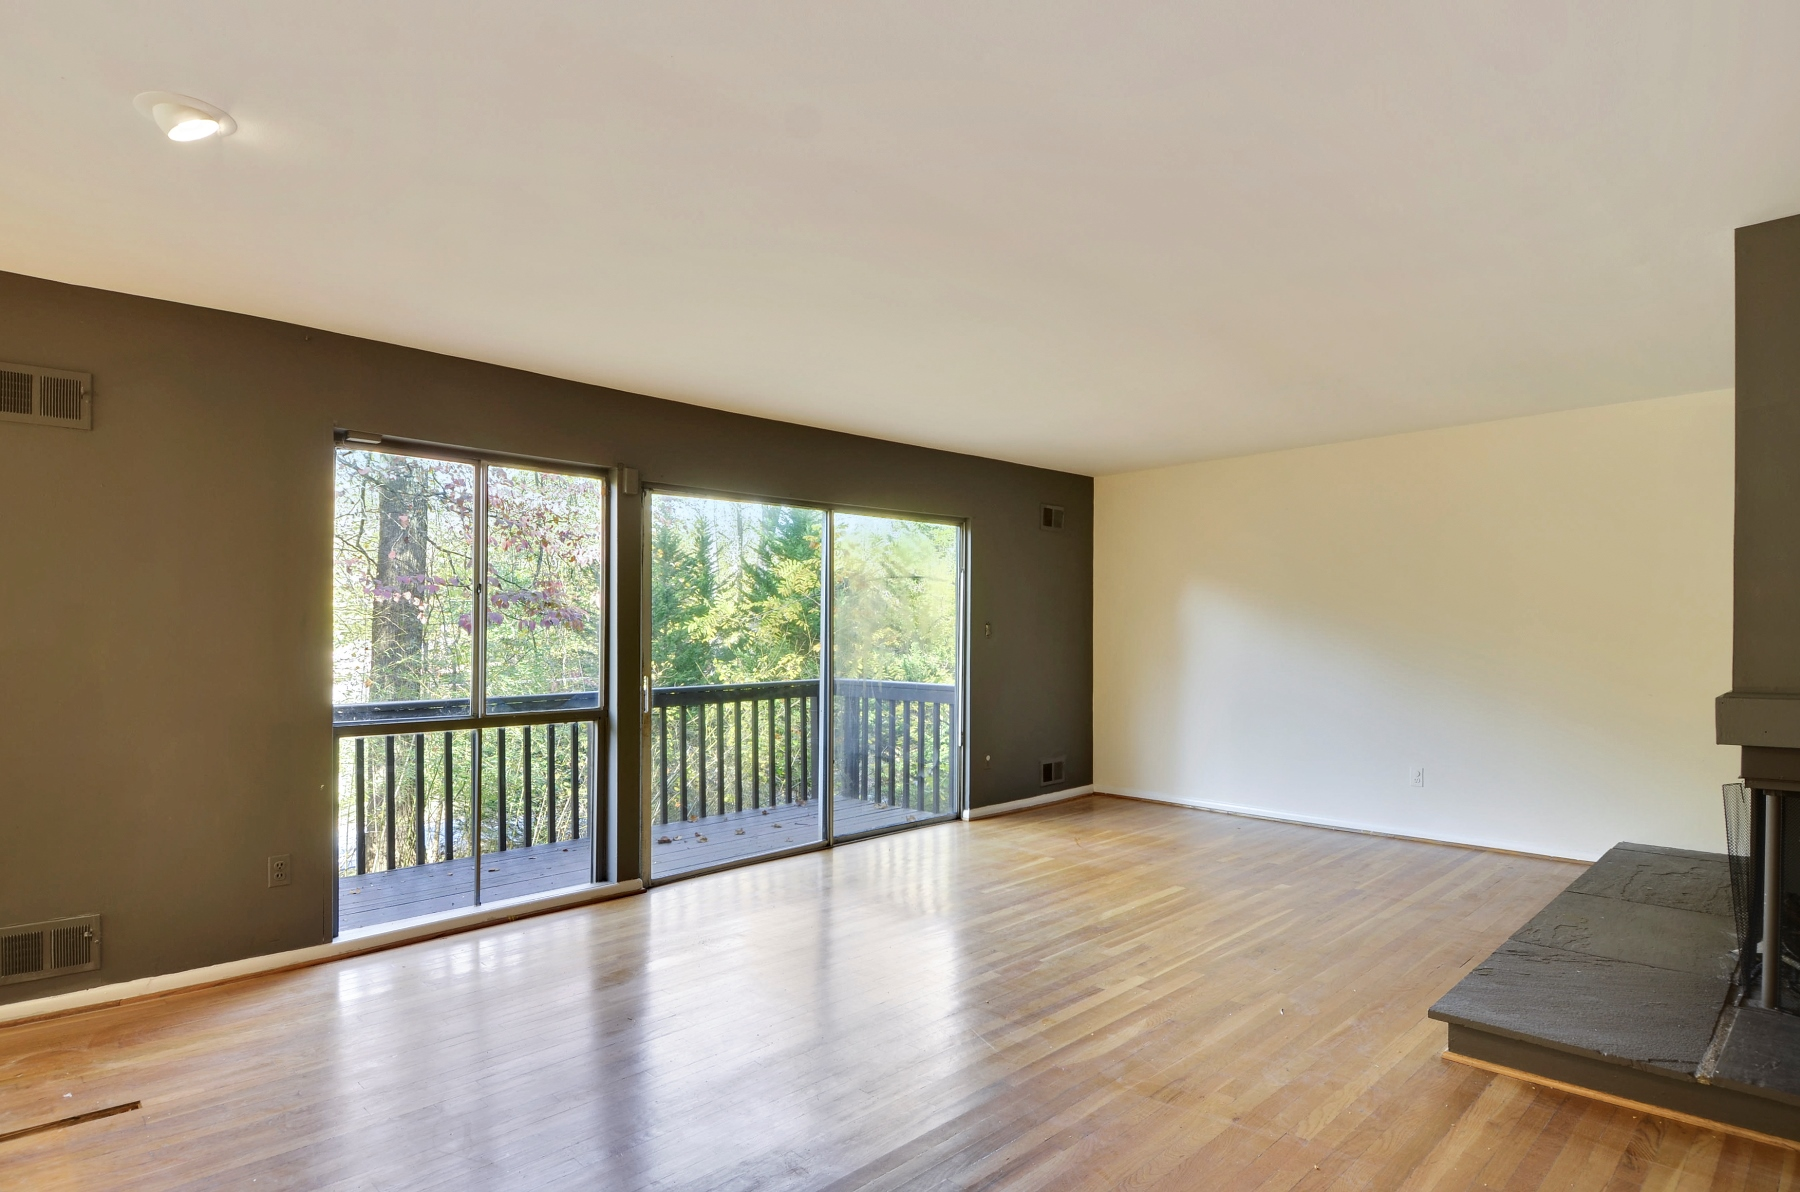 Additional photo for property listing at 4 Delford Avenue, Silver Spring  Silver Spring, Maryland 20904 Estados Unidos